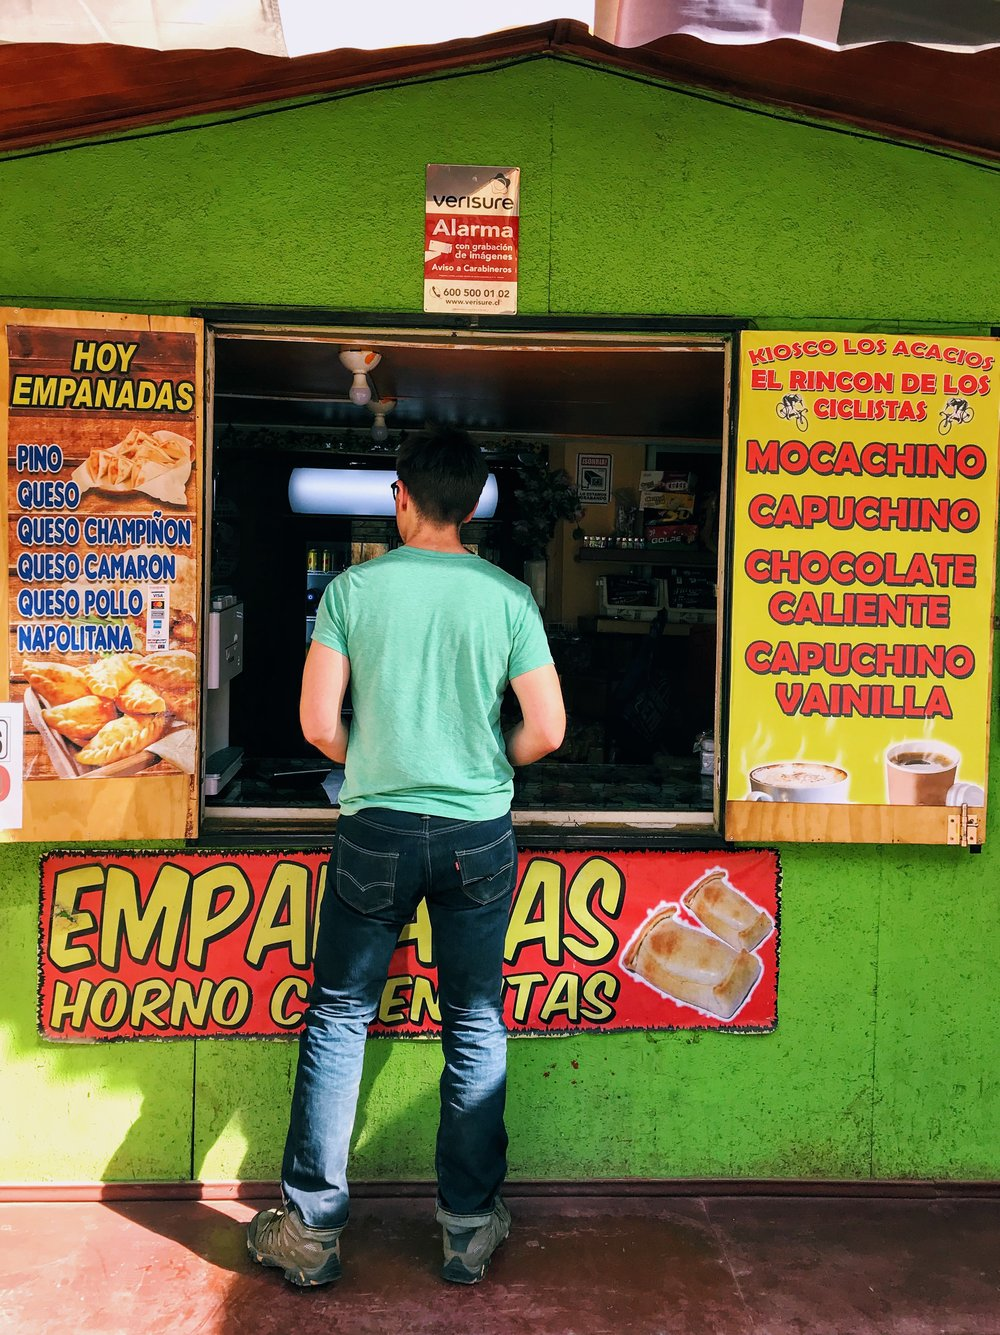 We ate these empanadas next to an incredibly healthy German man eating homemade tabouleh.